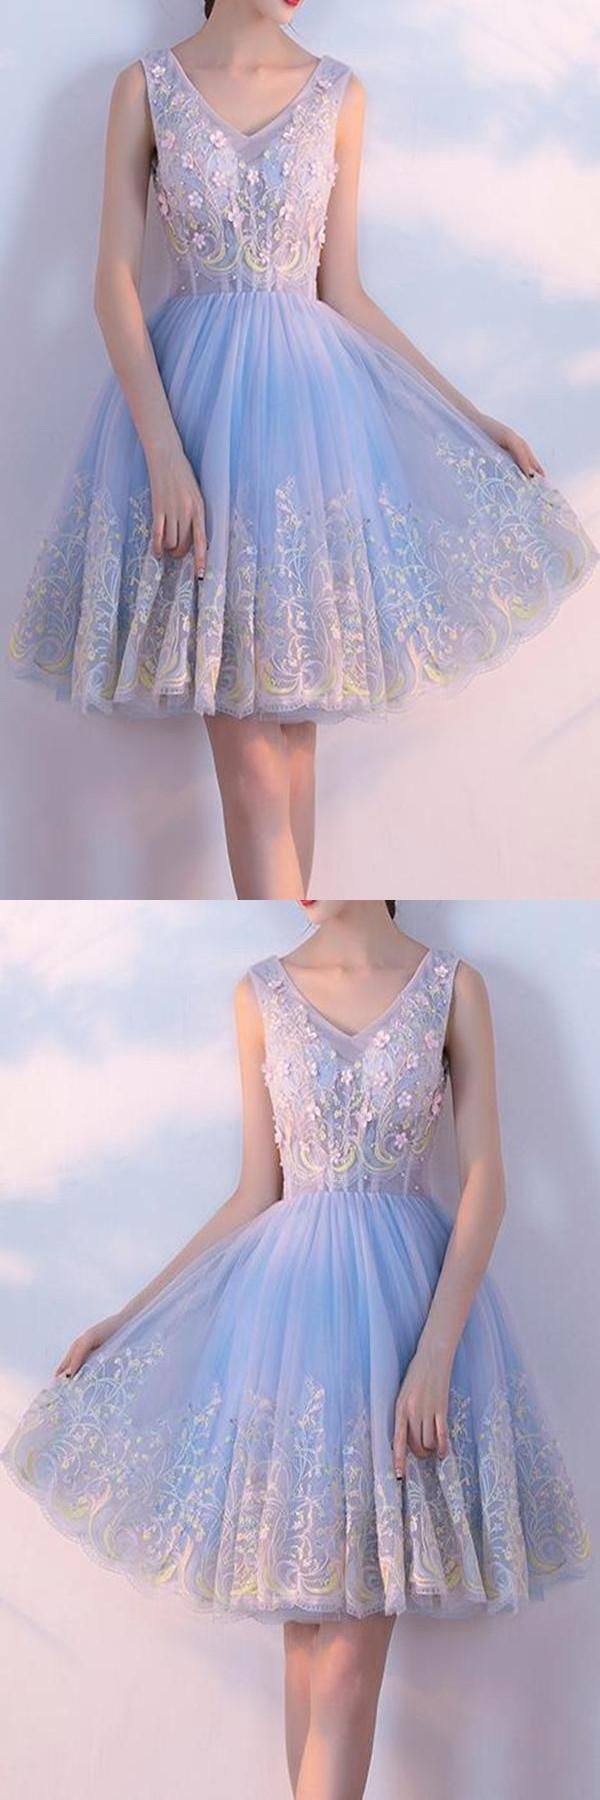 Hot sale dazzling short prom dresses vneck appliques homecoming